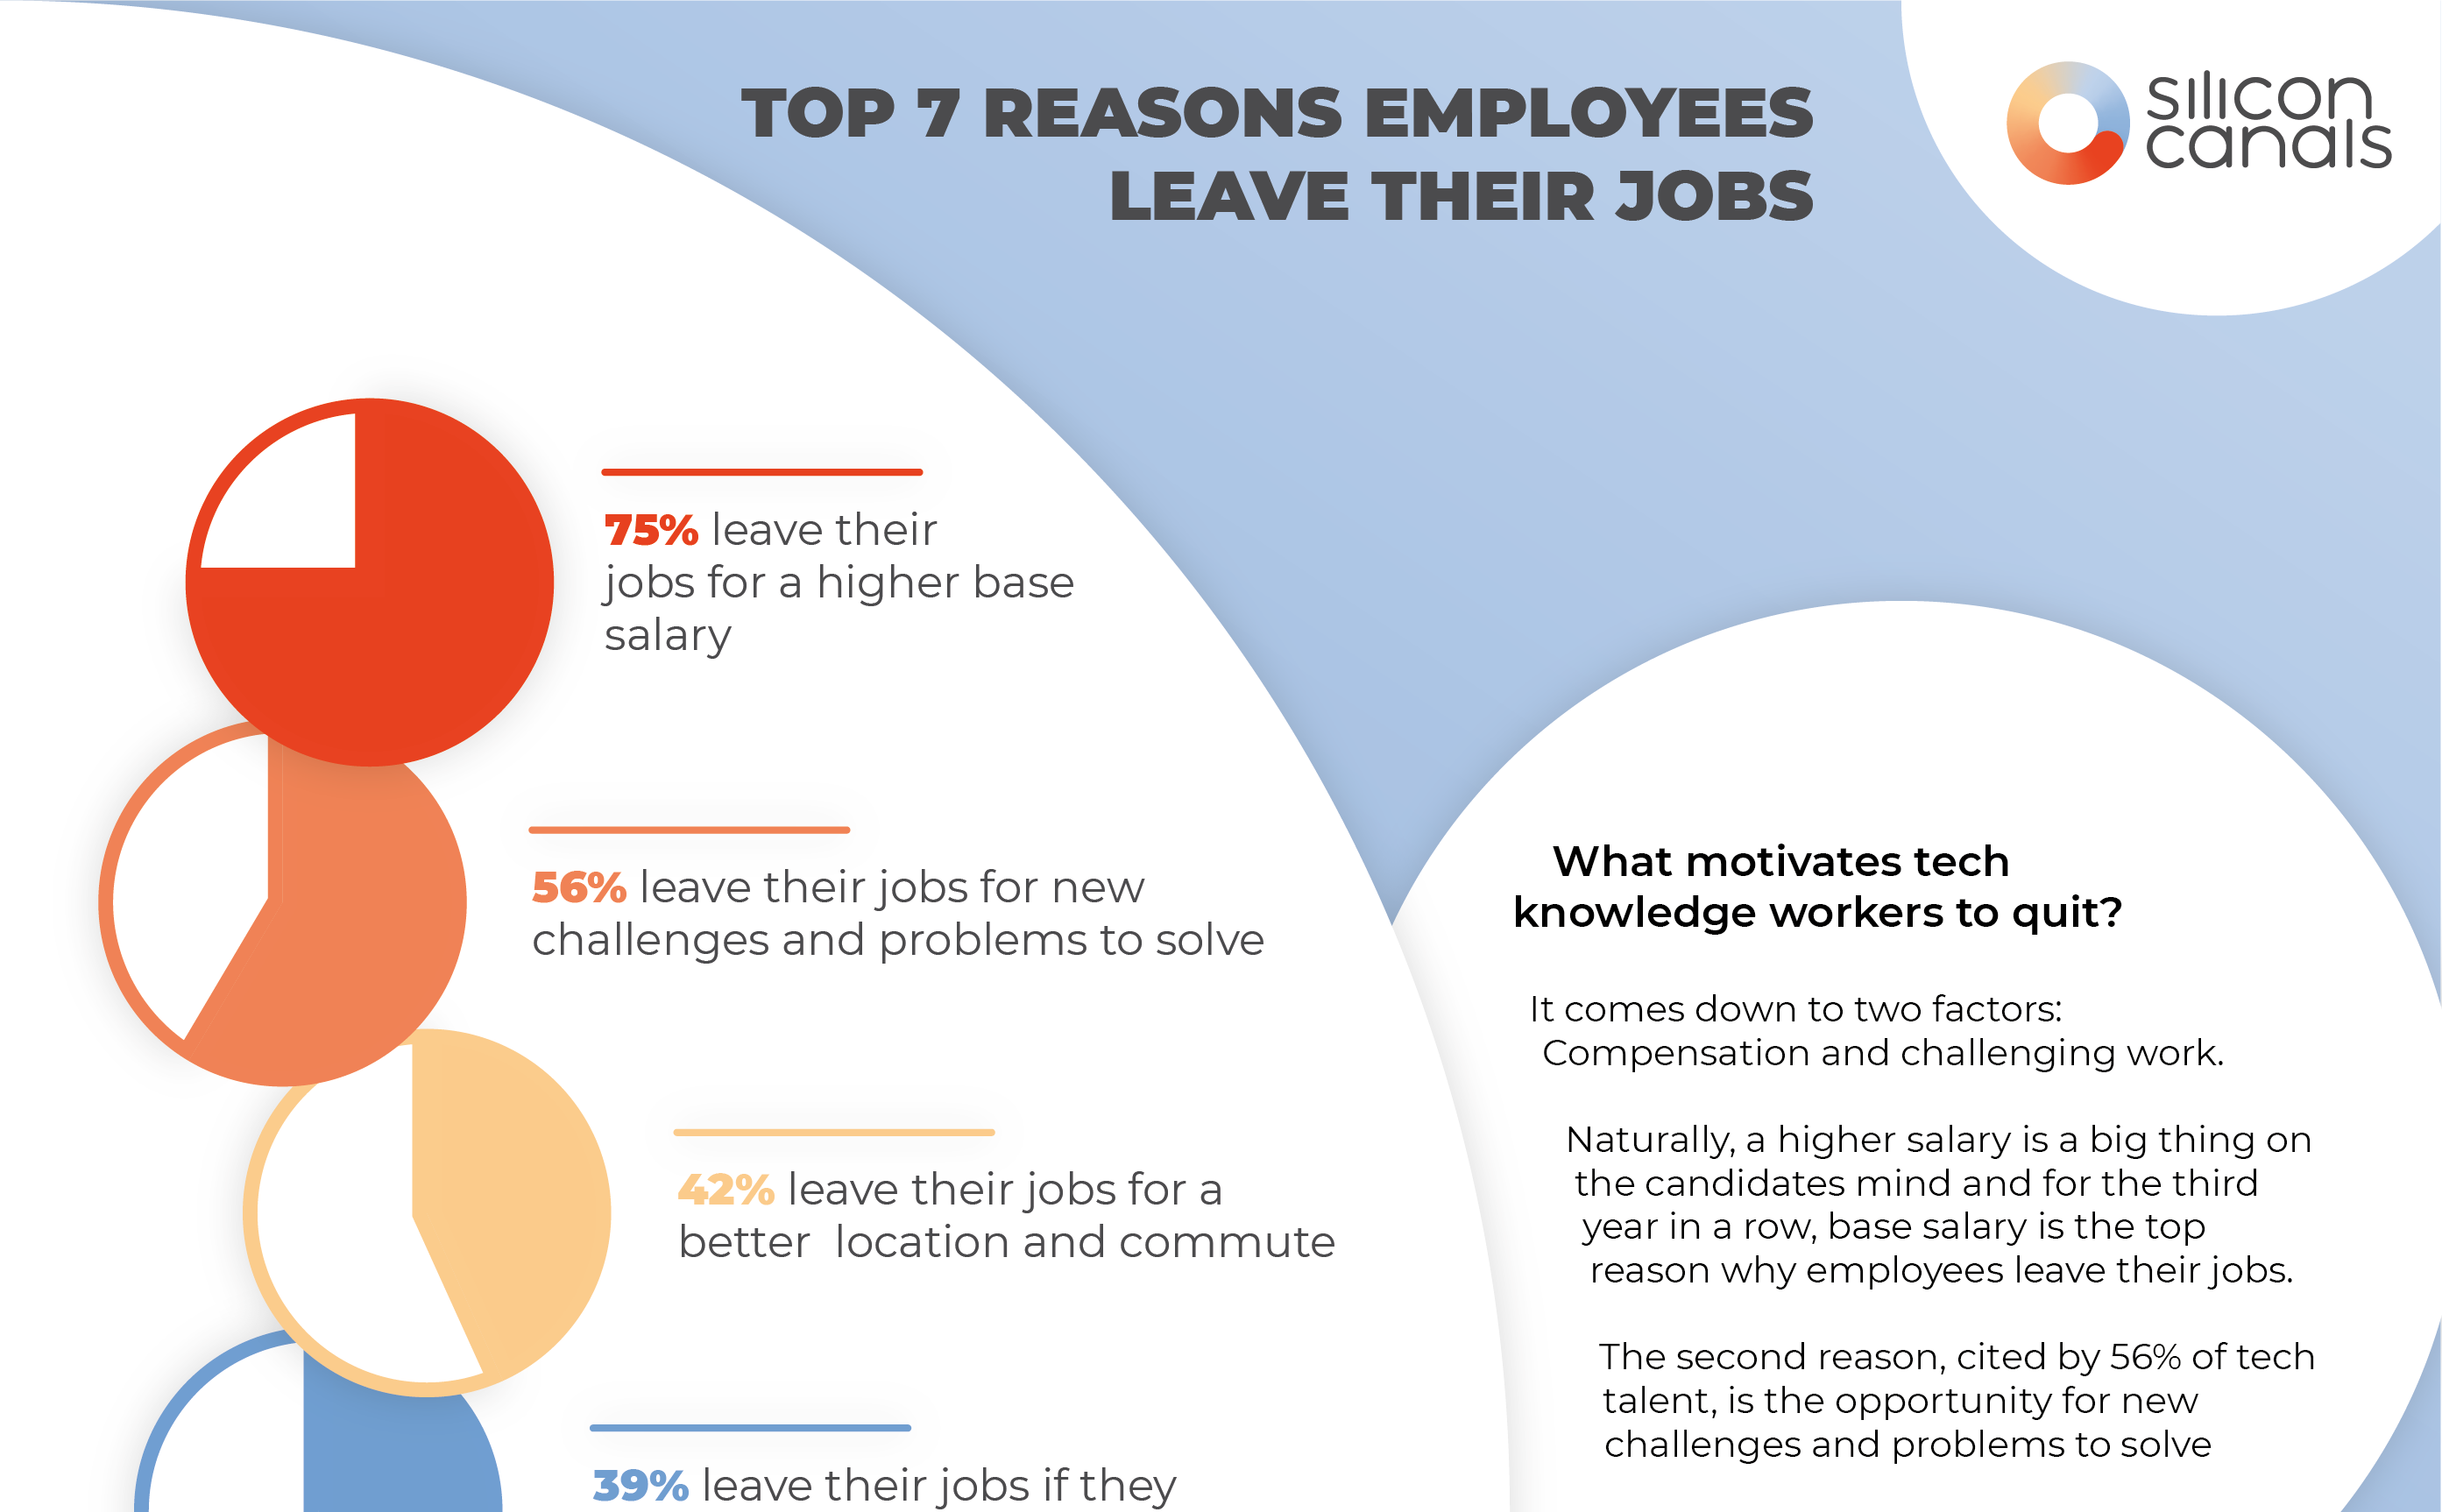 These are the top 7 reasons why employees leave their job